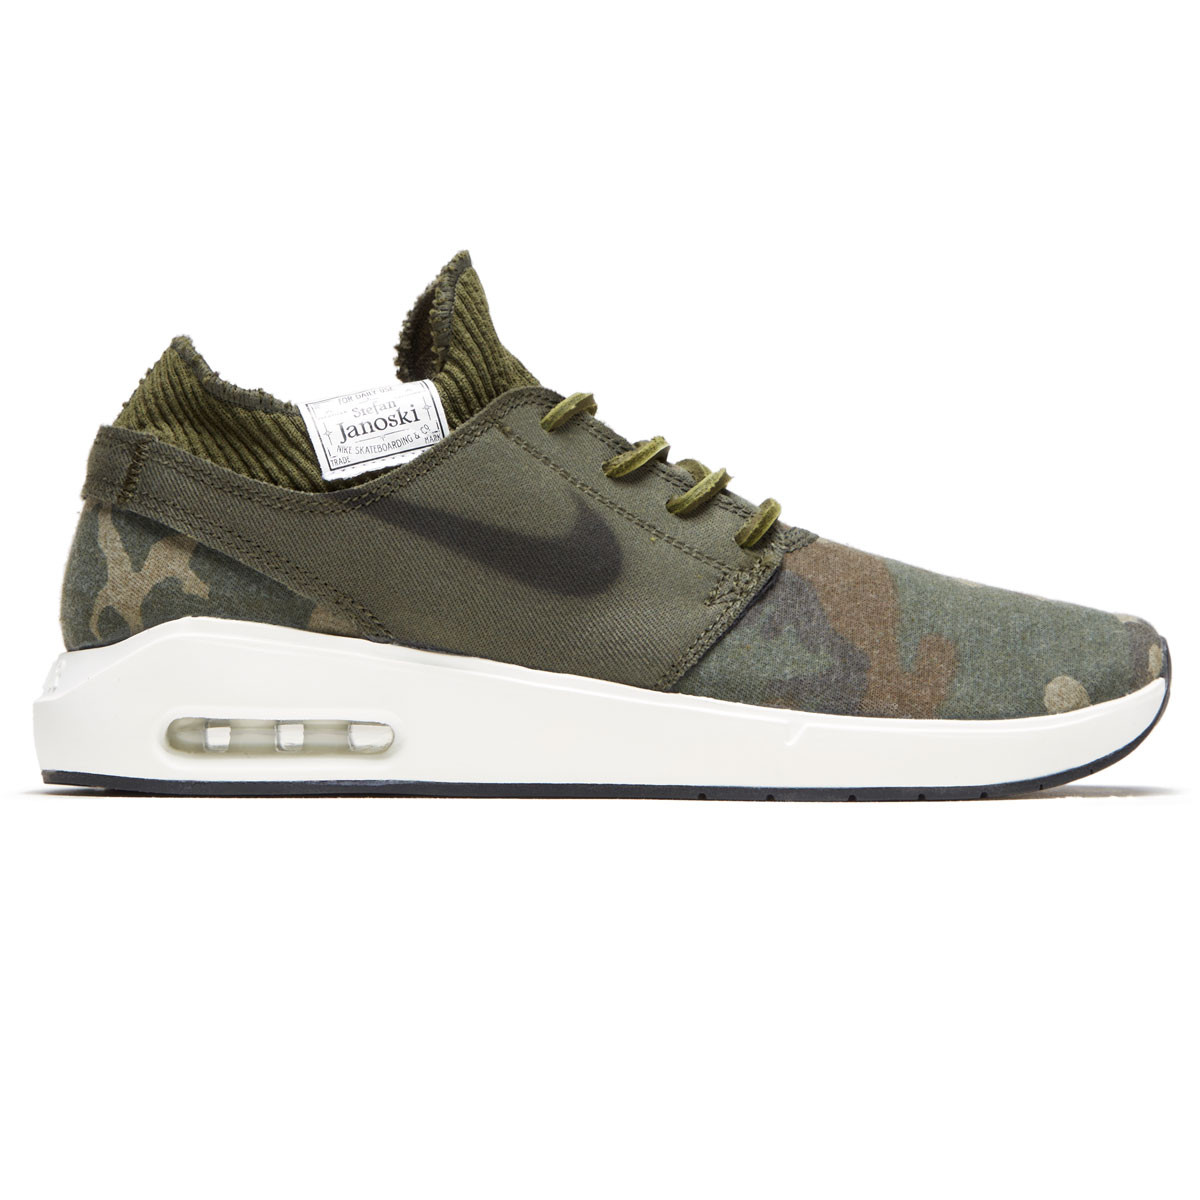 Nike SB Air Max Janoski 2 Premium Shoes Iguana Black